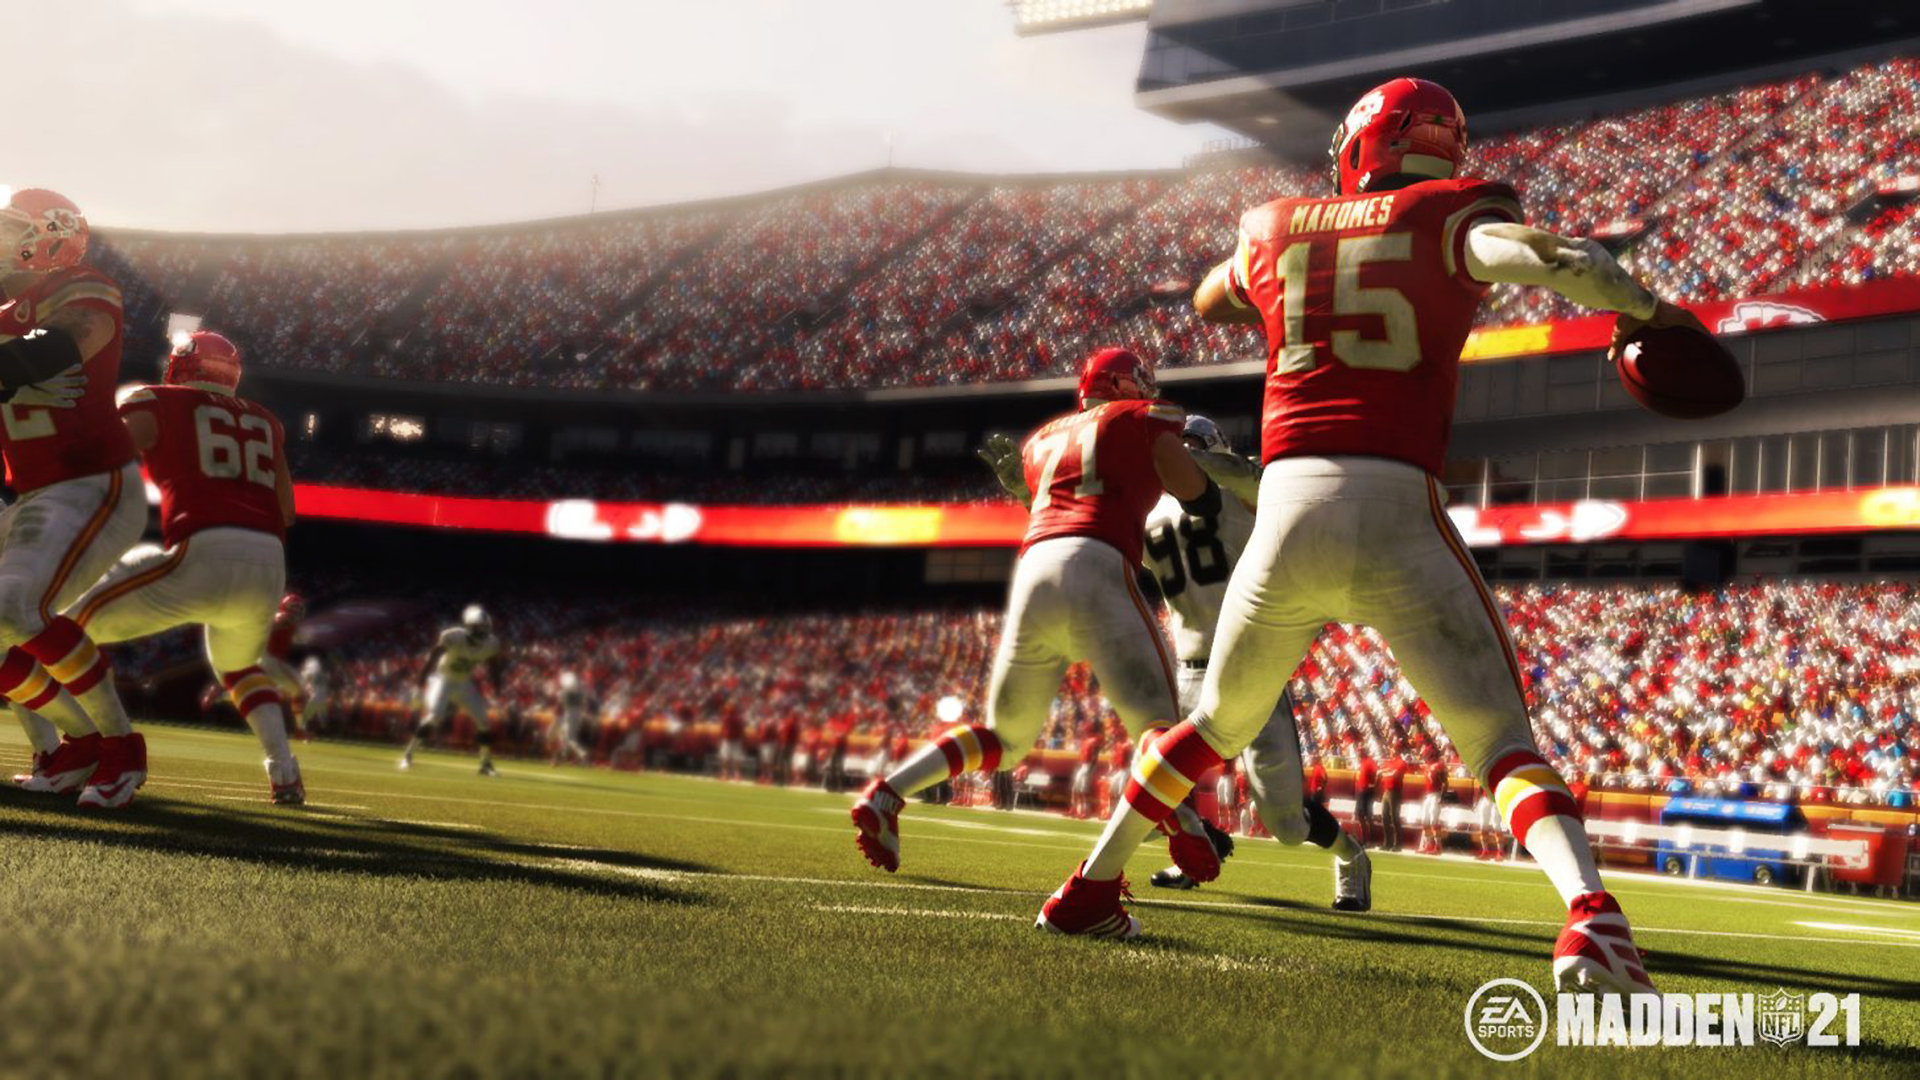 The Madden 22 cover athlete may have been leaked by GameStop